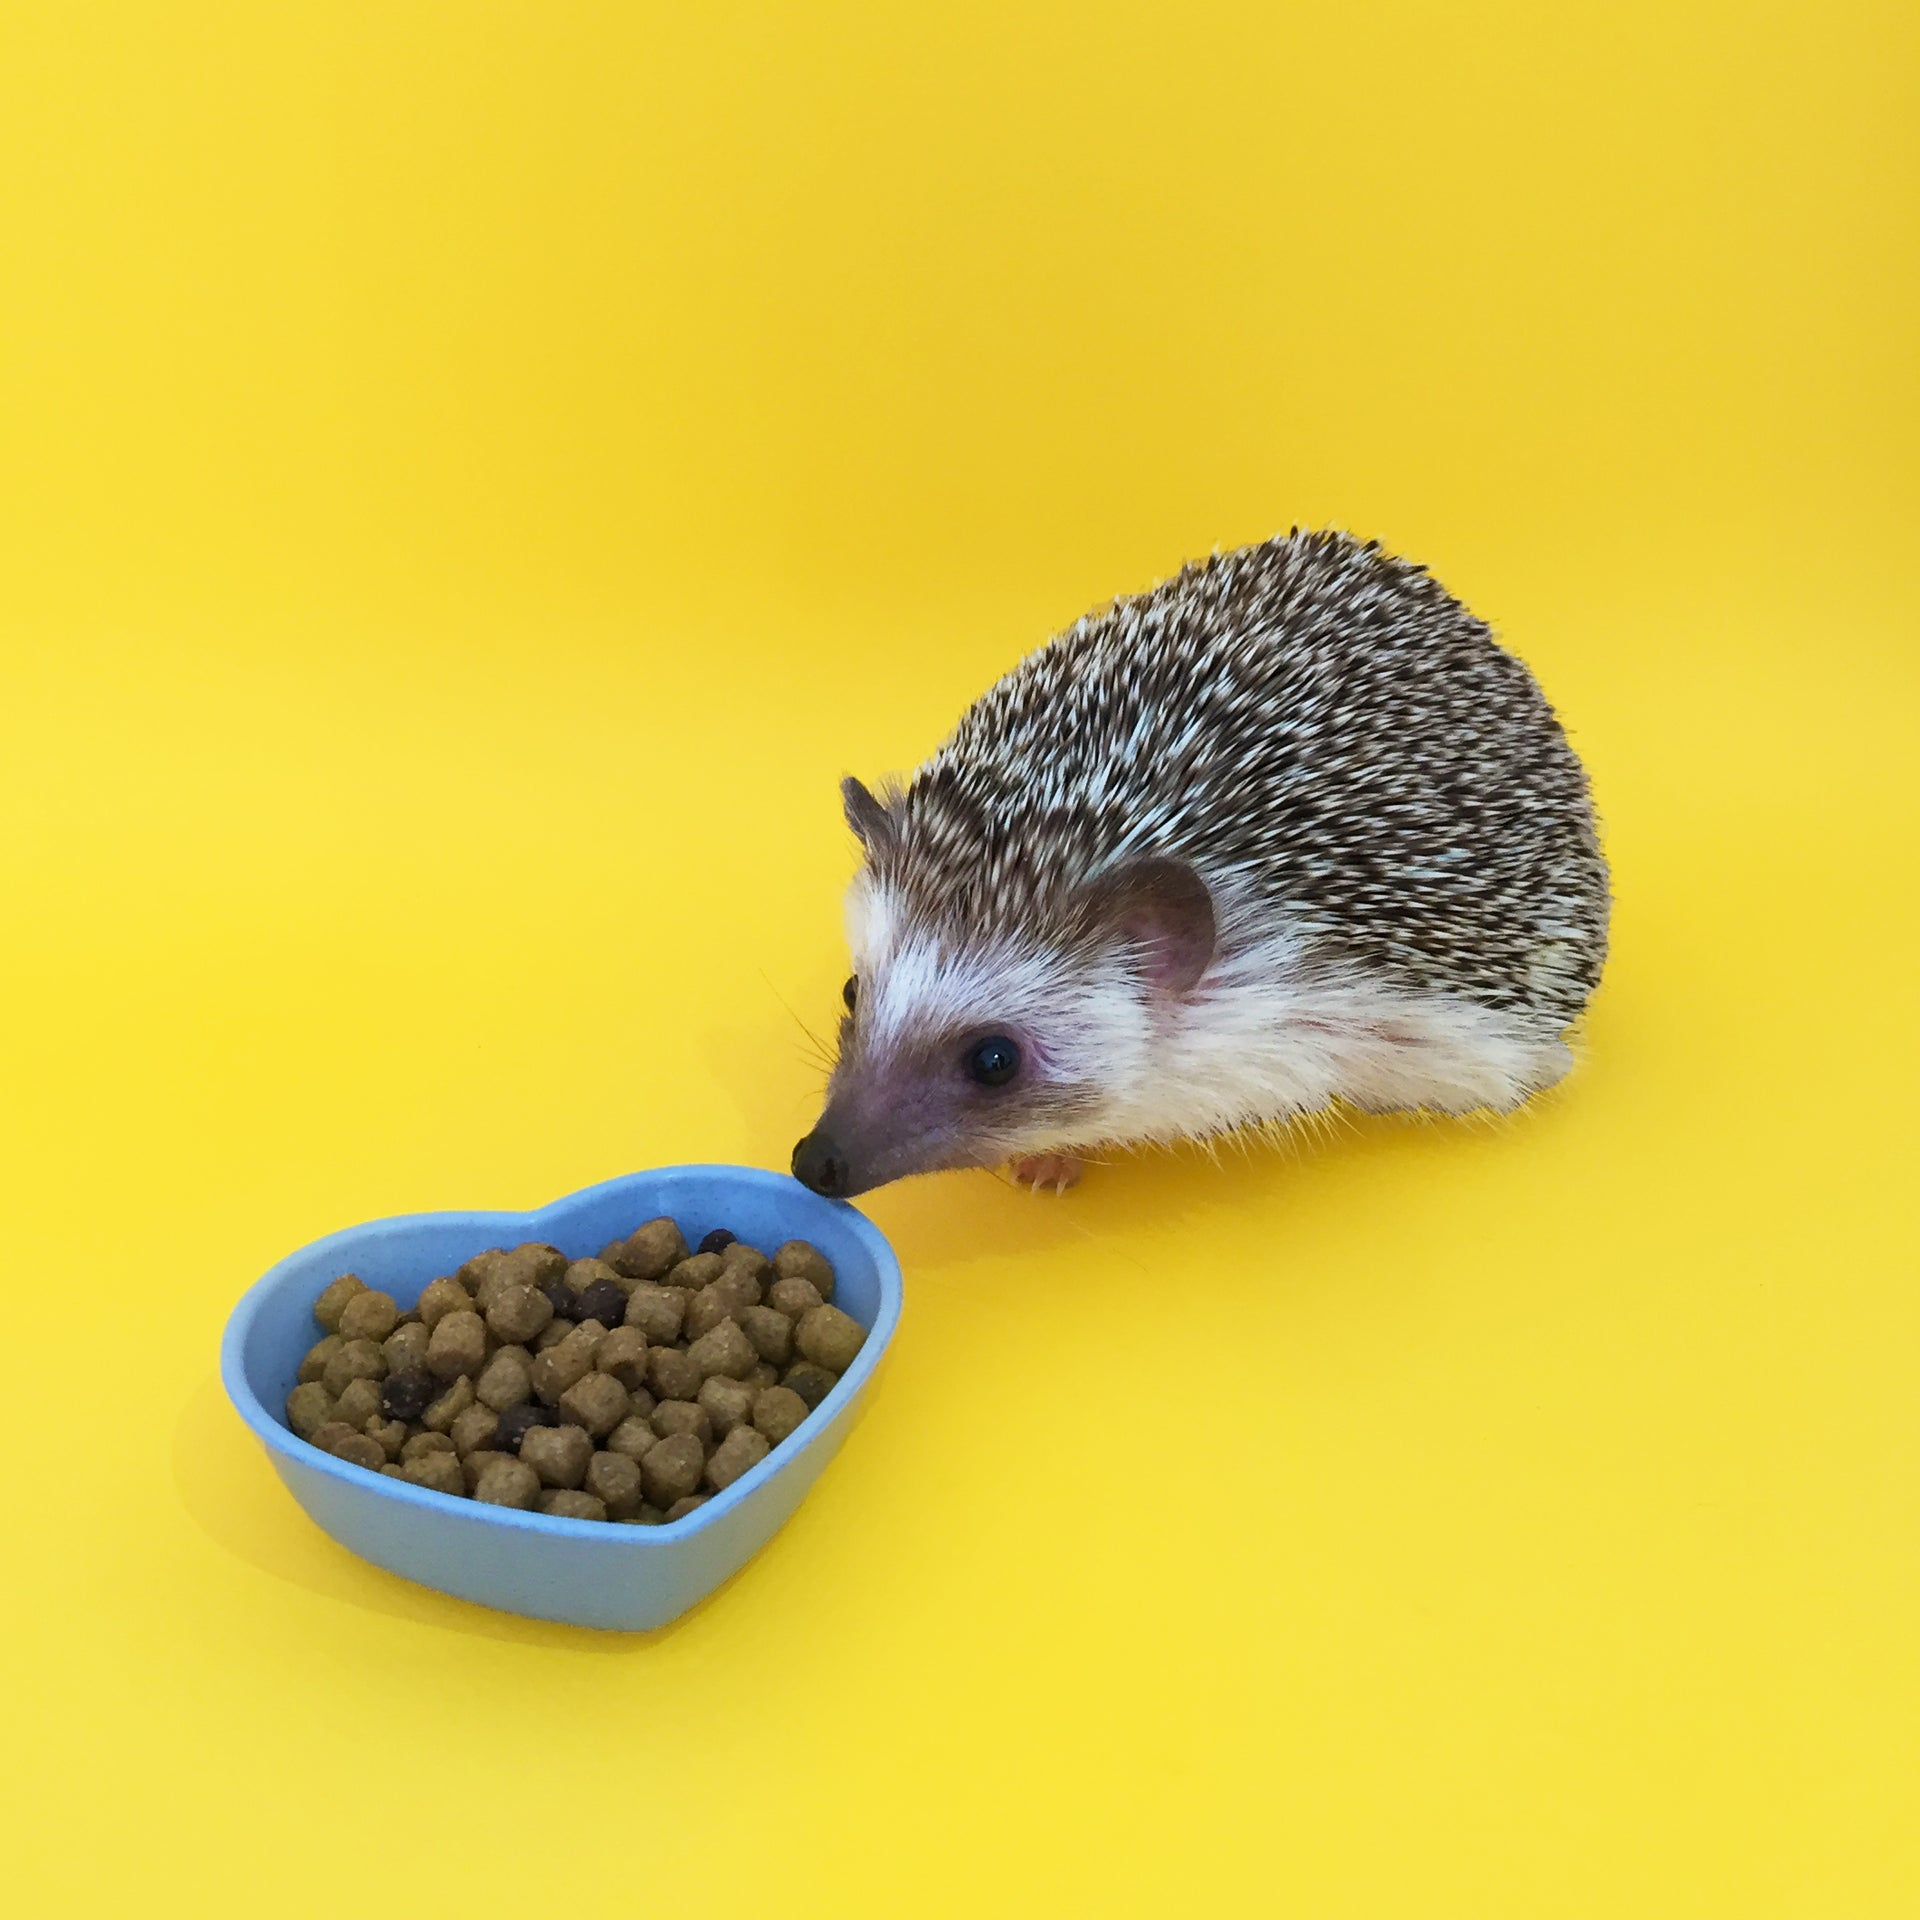 Small Heart-Shaped Food Bowl